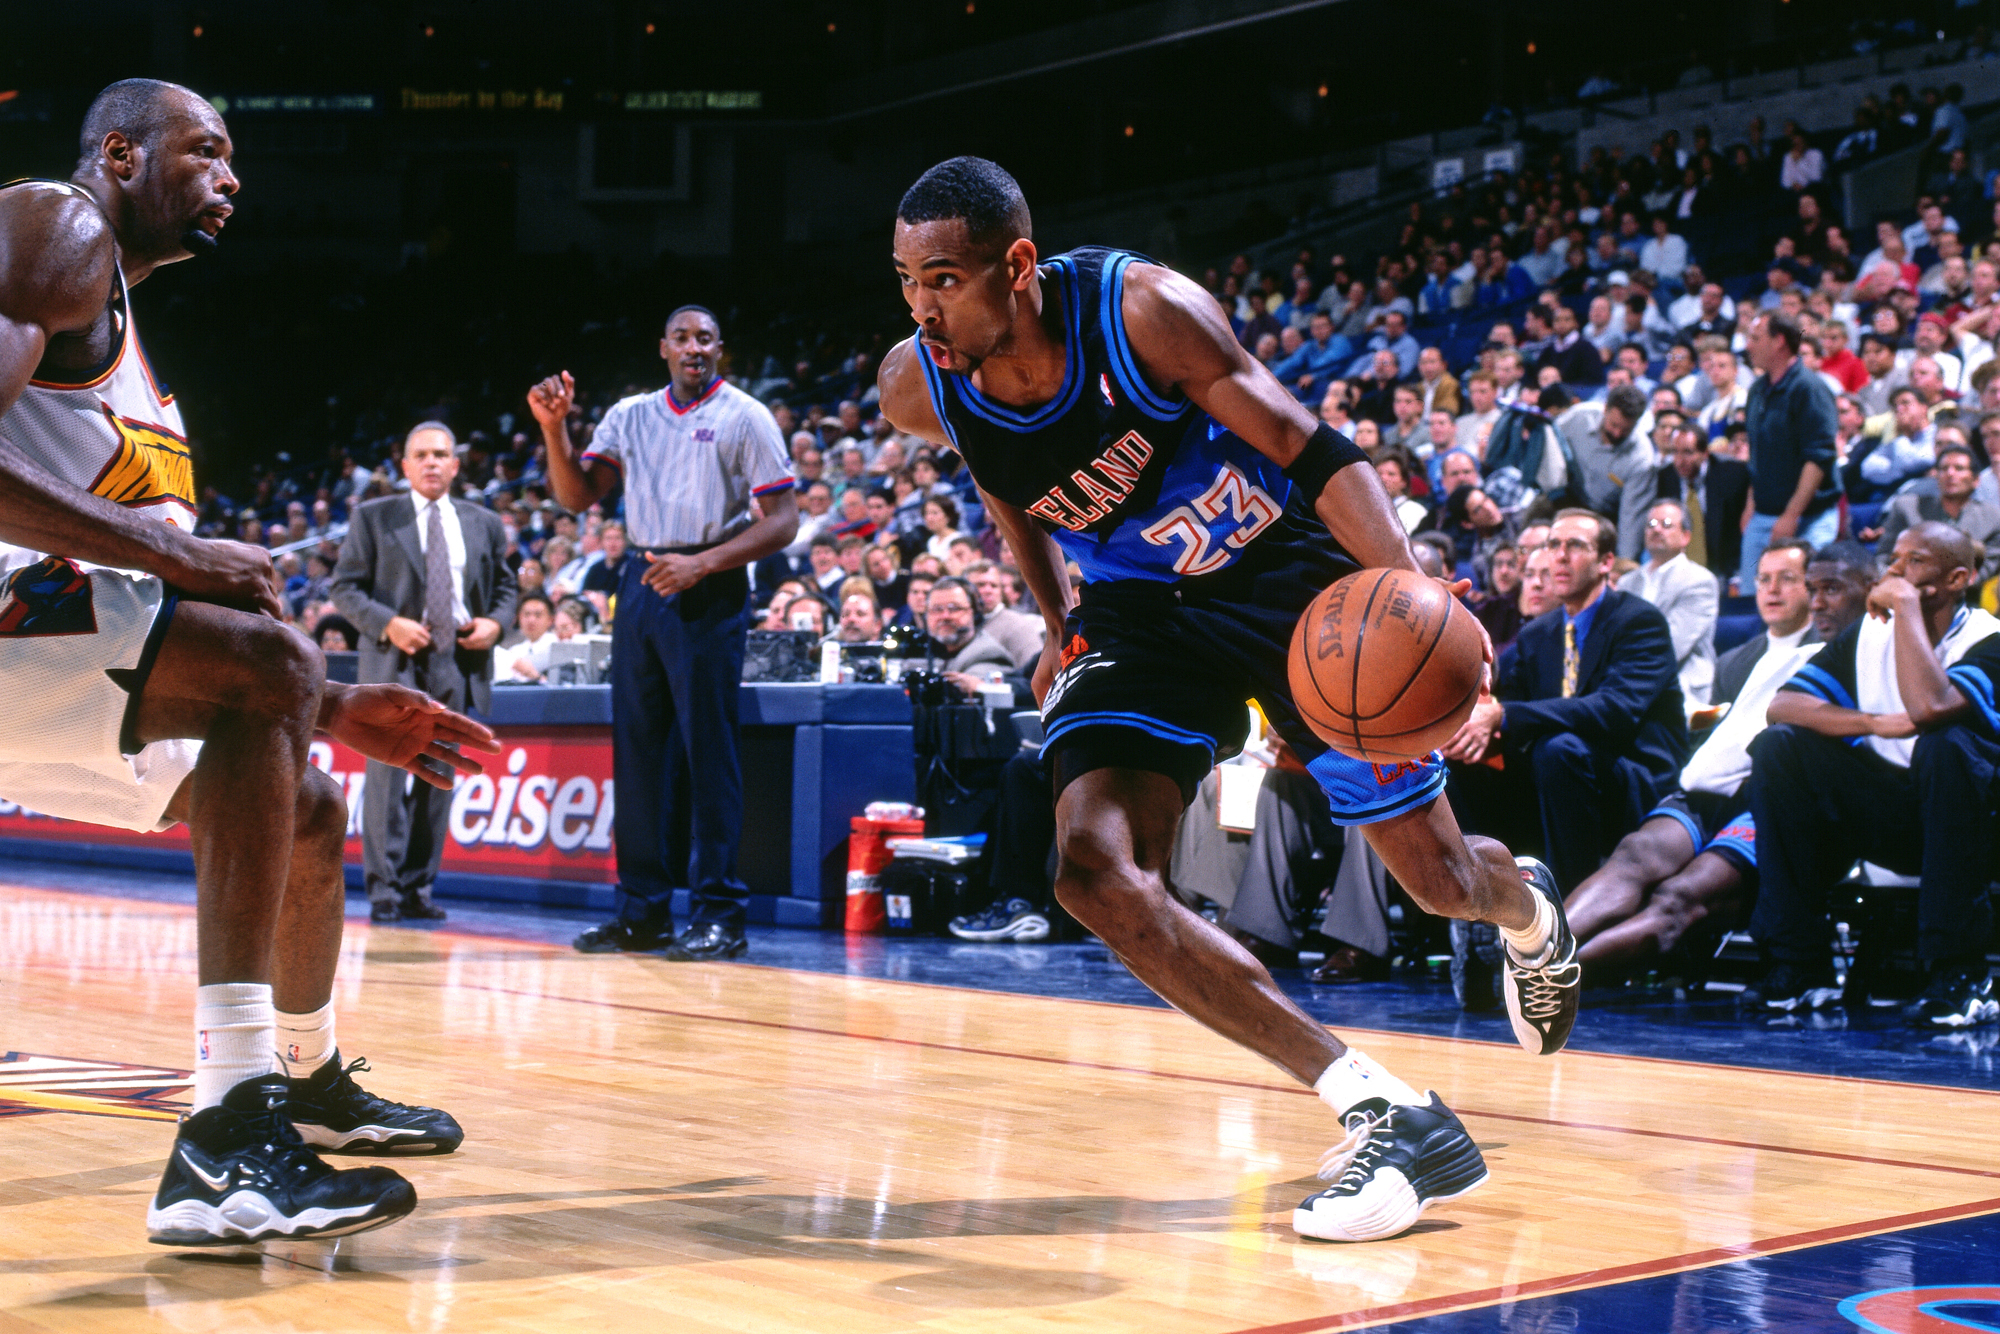 1c515766c37 Derek Anderson (right) of the Cleveland Cavaliers drives against the Golden  State Warriors on Dec. 3, 1997, at Oracle Arena in Oakland, California.